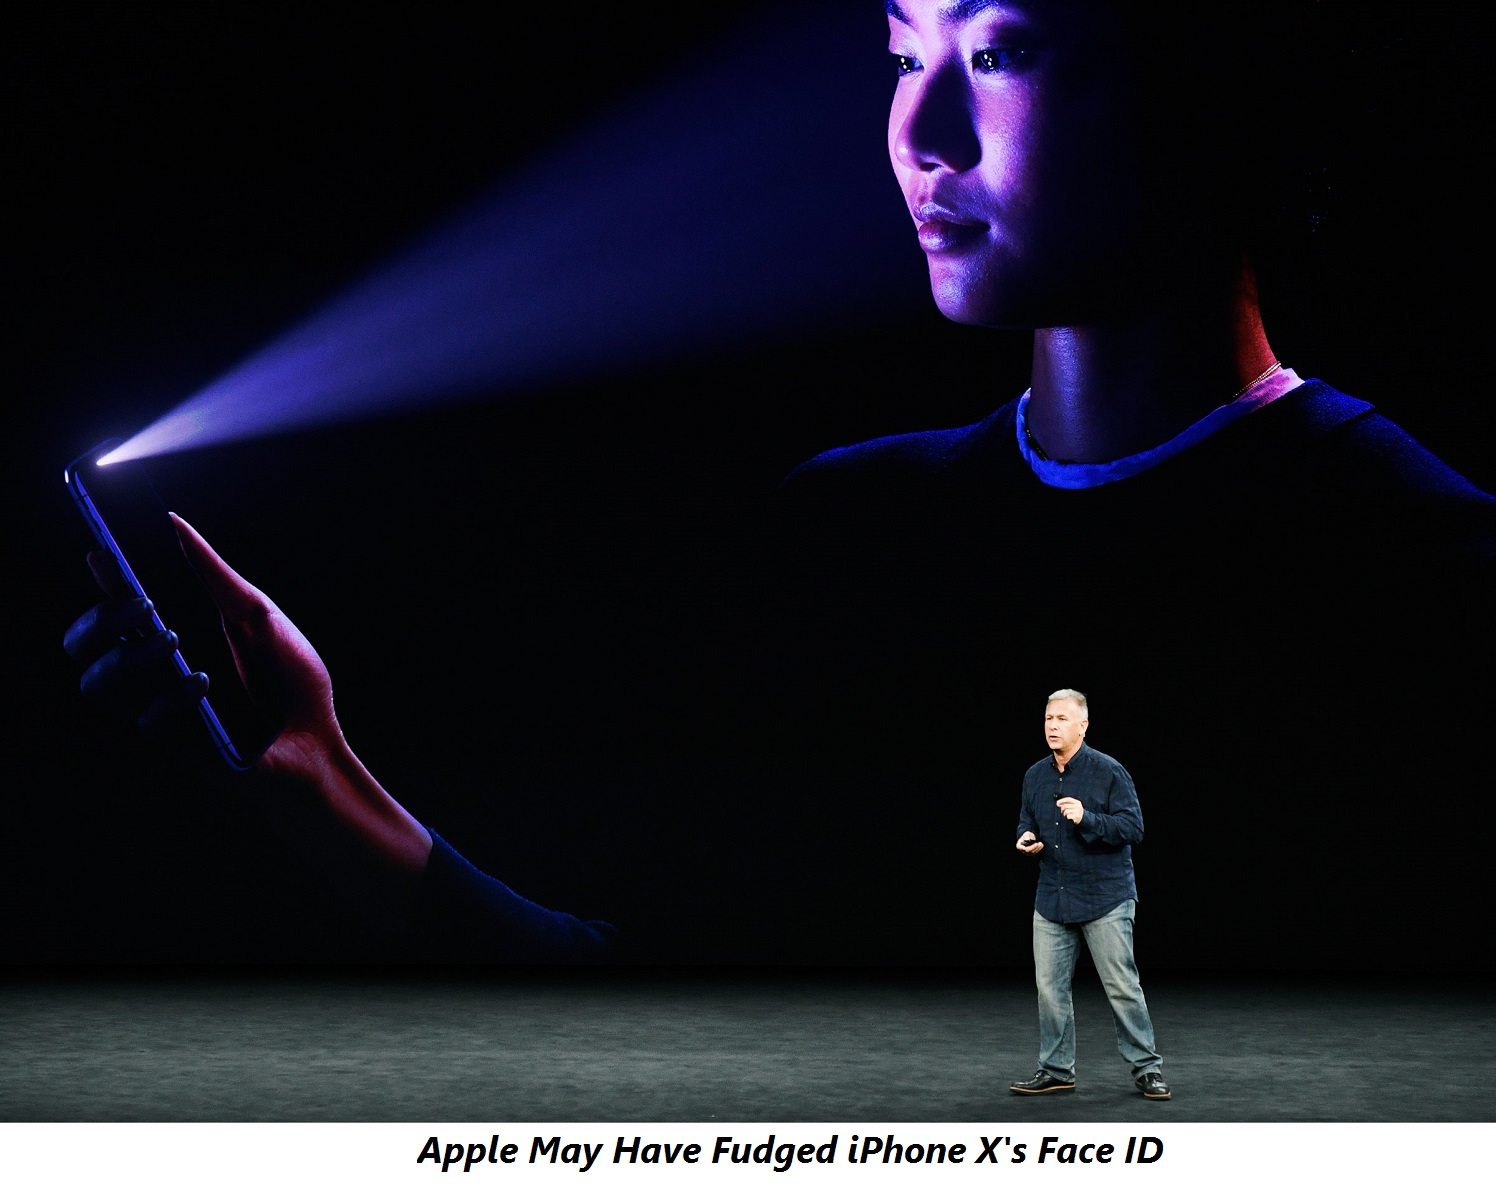 http://www.statetechnews.com/2017/10/apple-may-have-fudged-iphone-xs-face-id.html